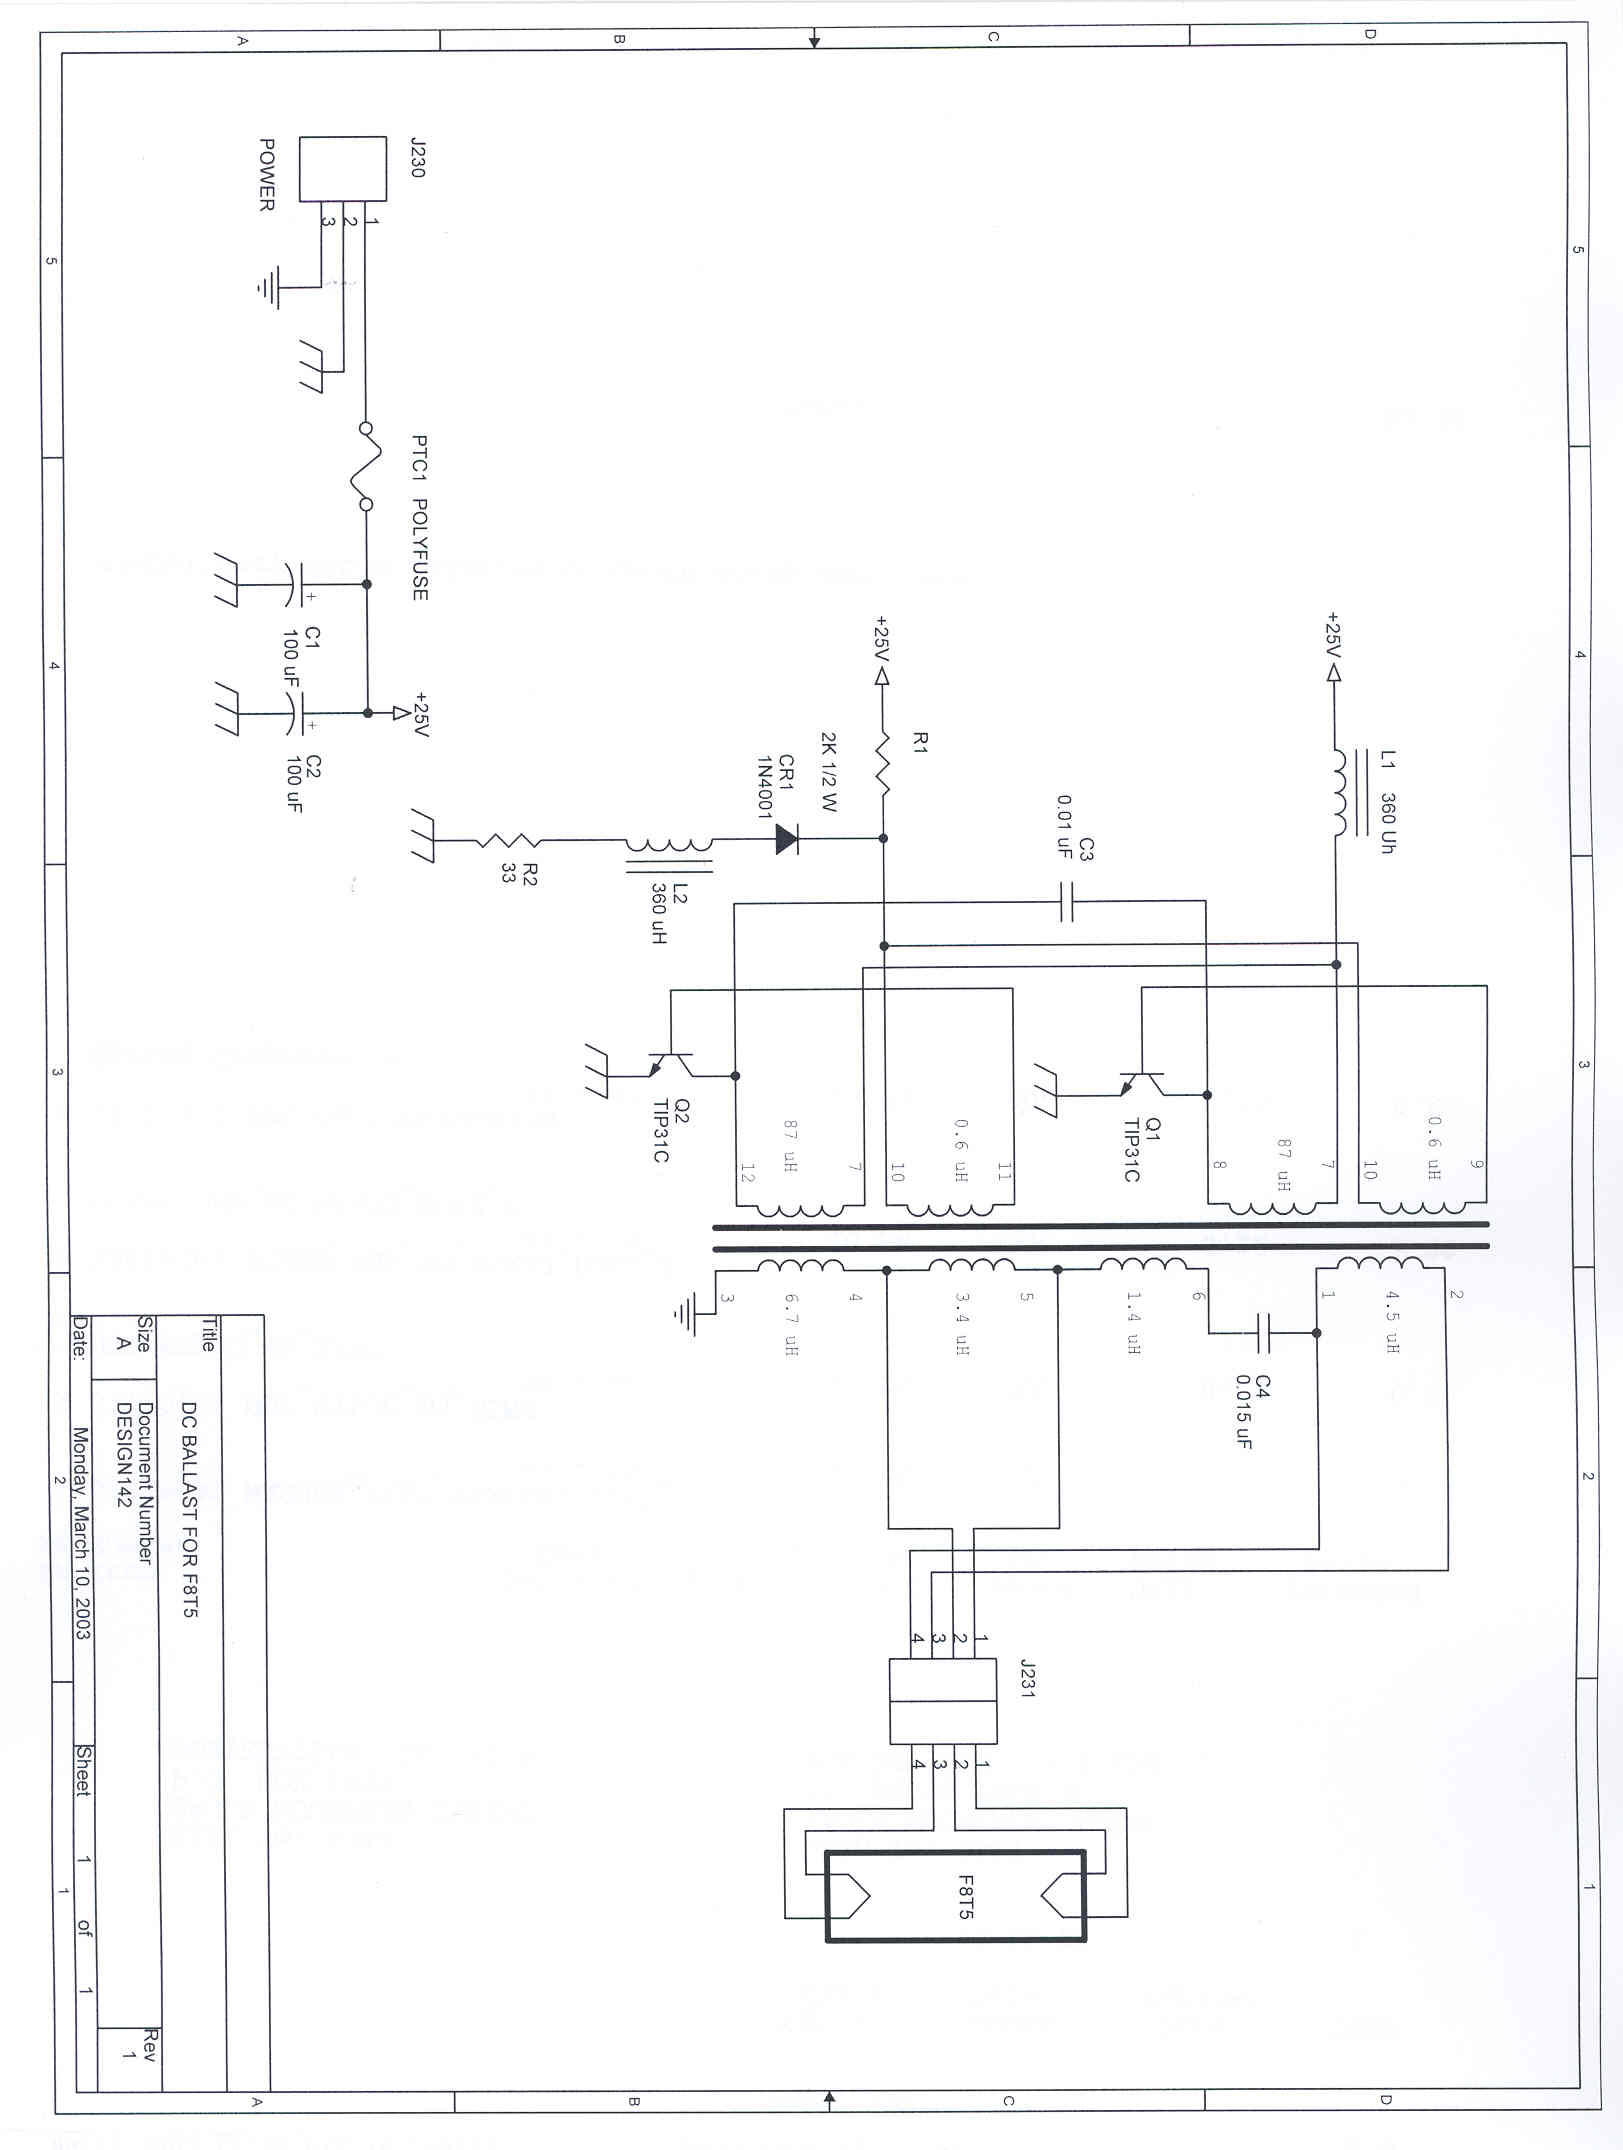 igt power supply diagram  igt  free engine image for user